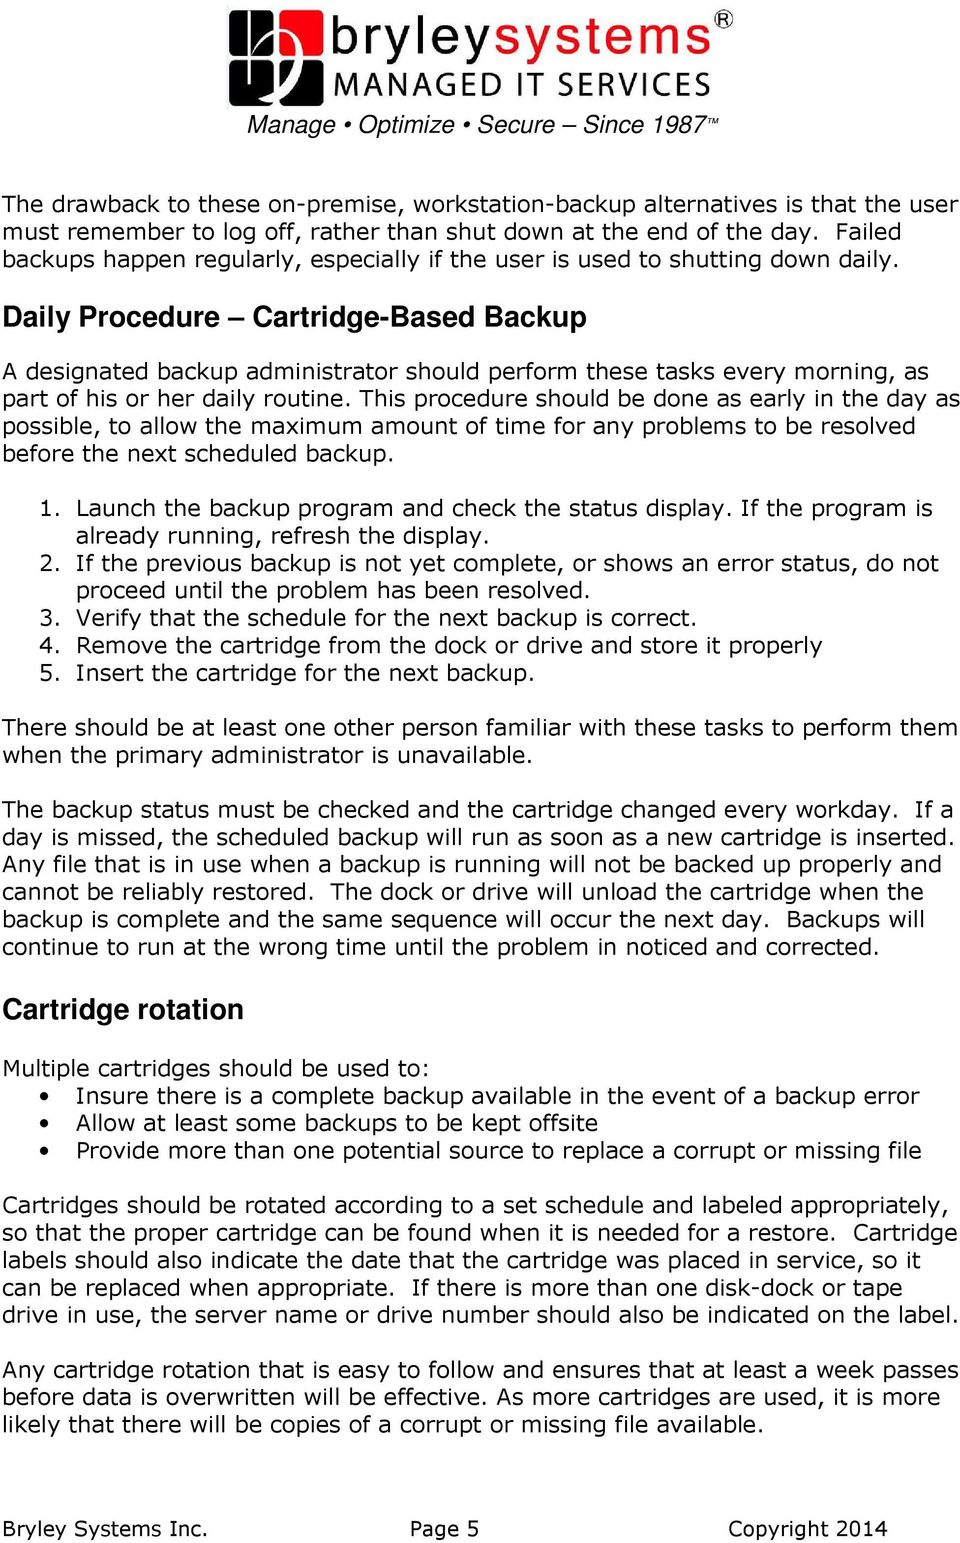 Daily Procedure Cartridge-Based Backup A designated backup administrator should perform these tasks every morning, as part of his or her daily routine.